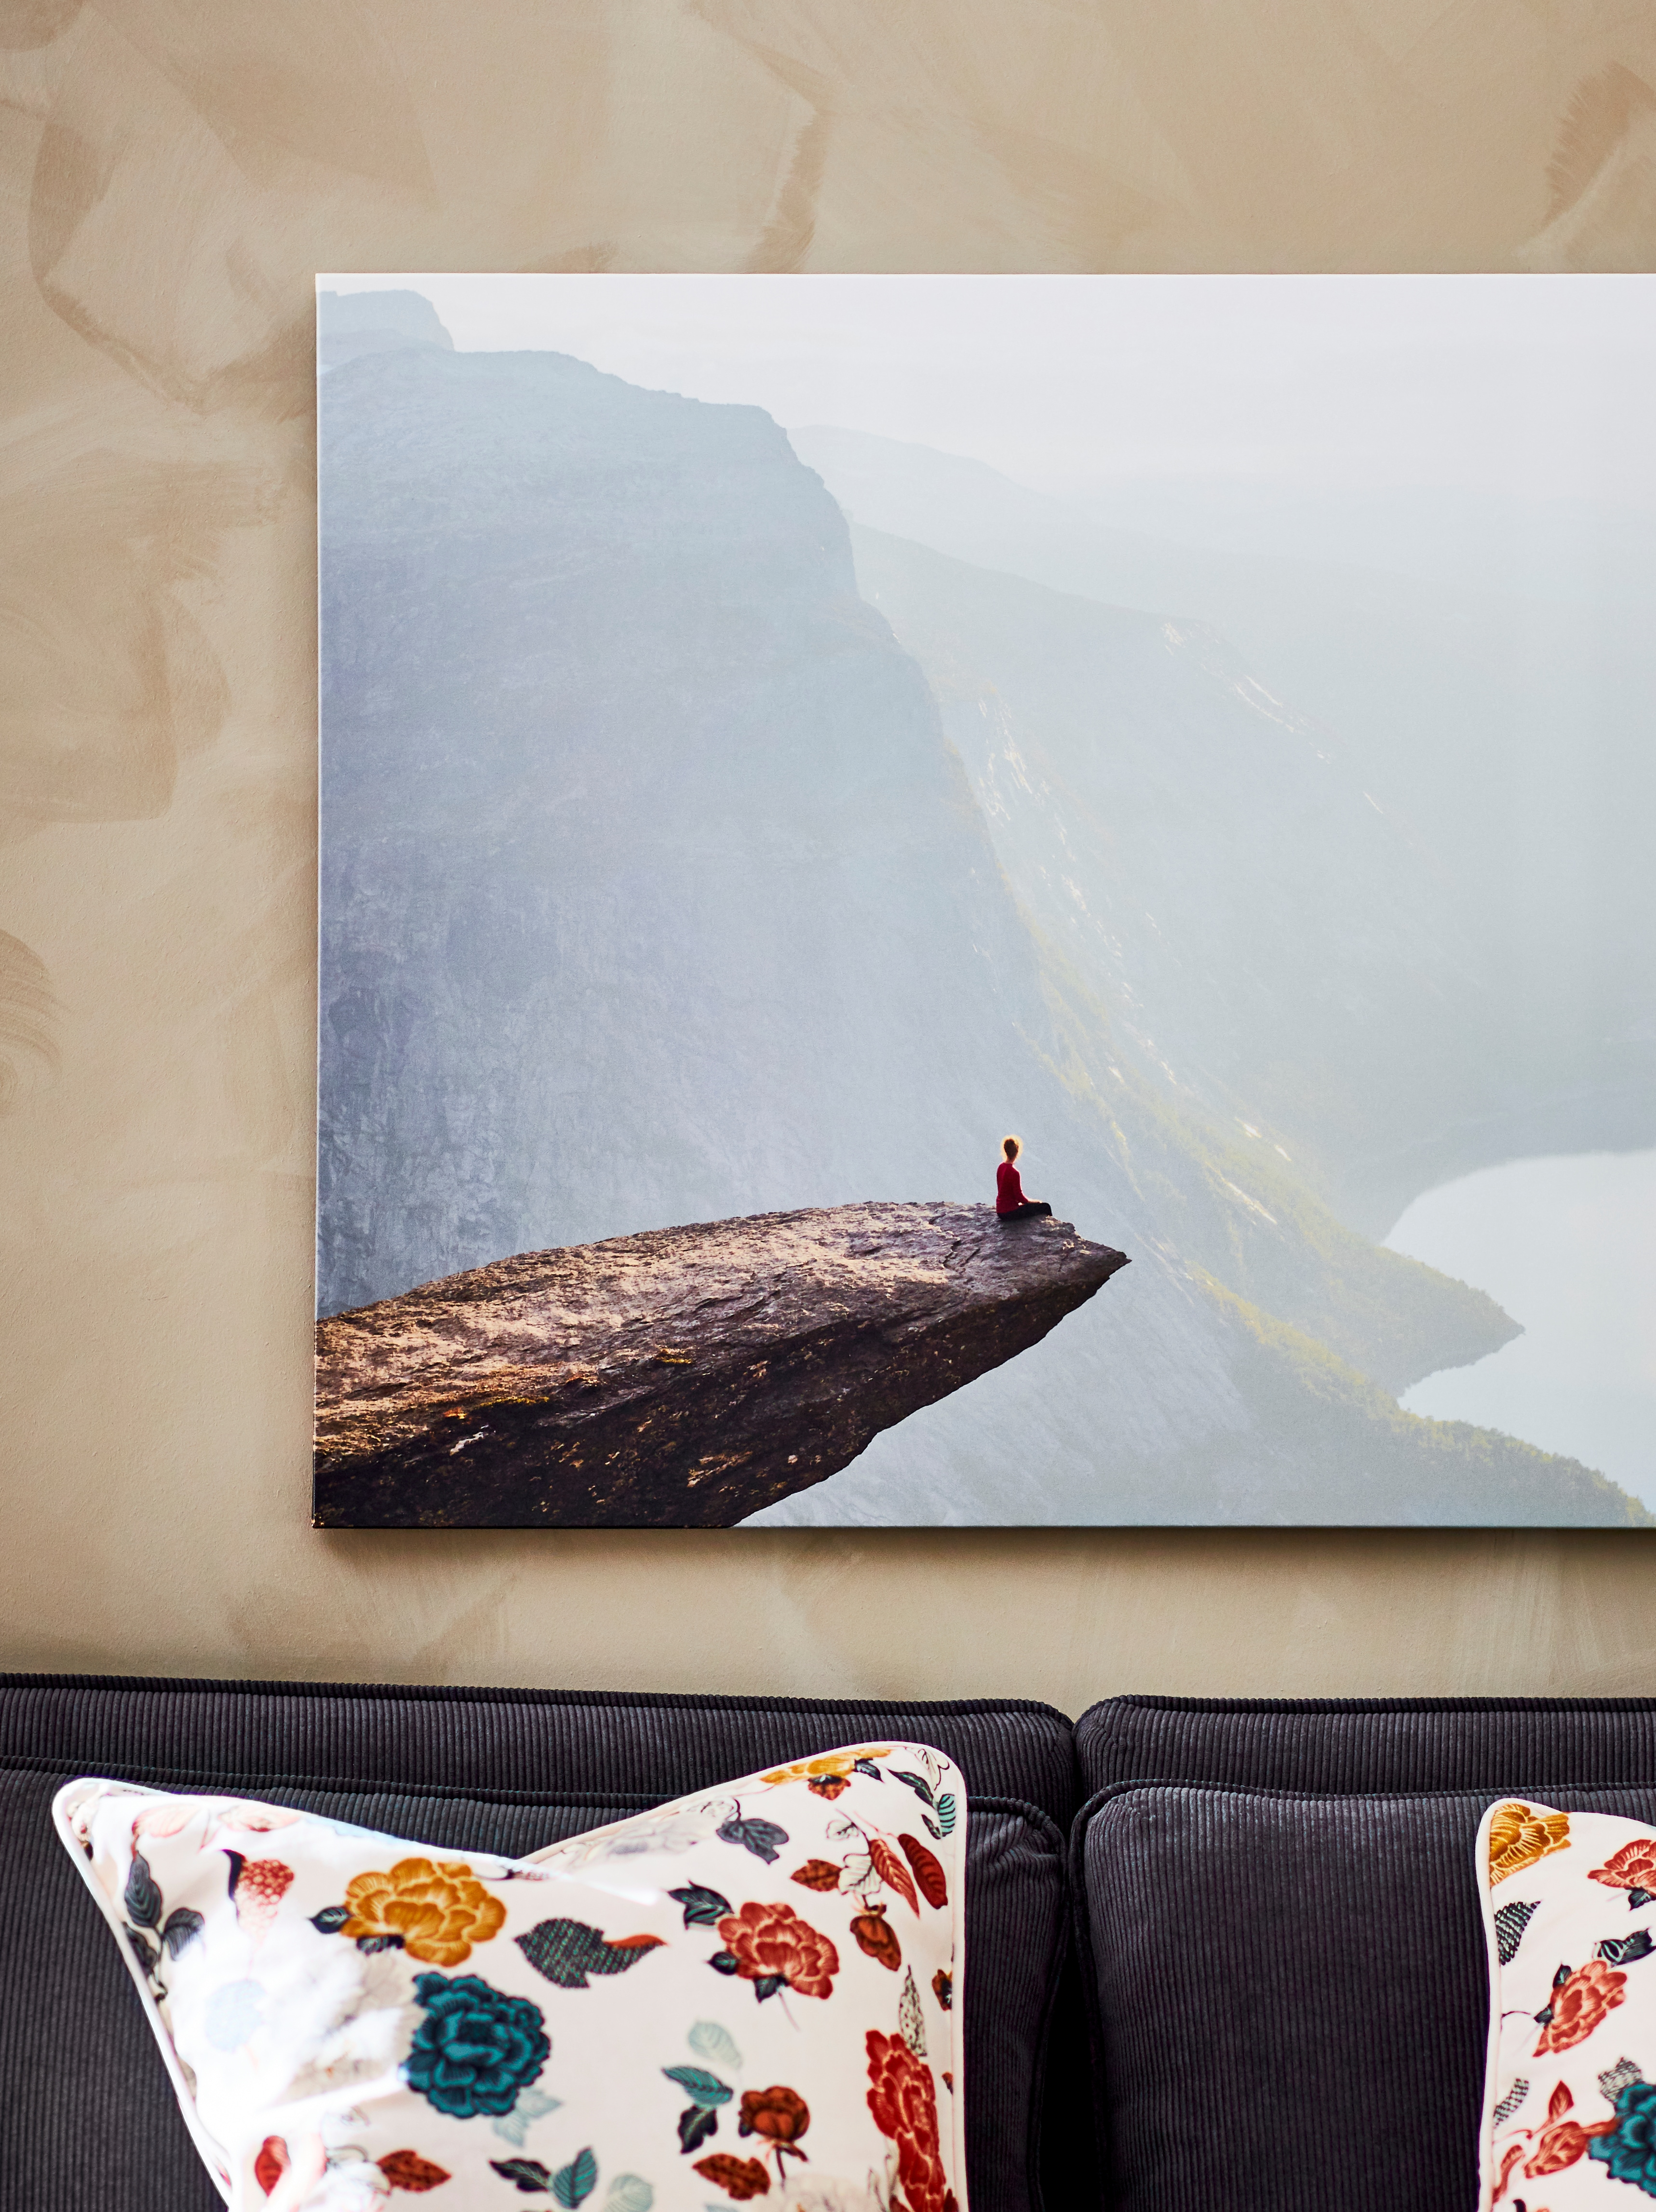 Part of a PJÄTTERYD picture of Norway's Trolltunga mountain hanging on a wall with the top of a grey sofa visible below it.